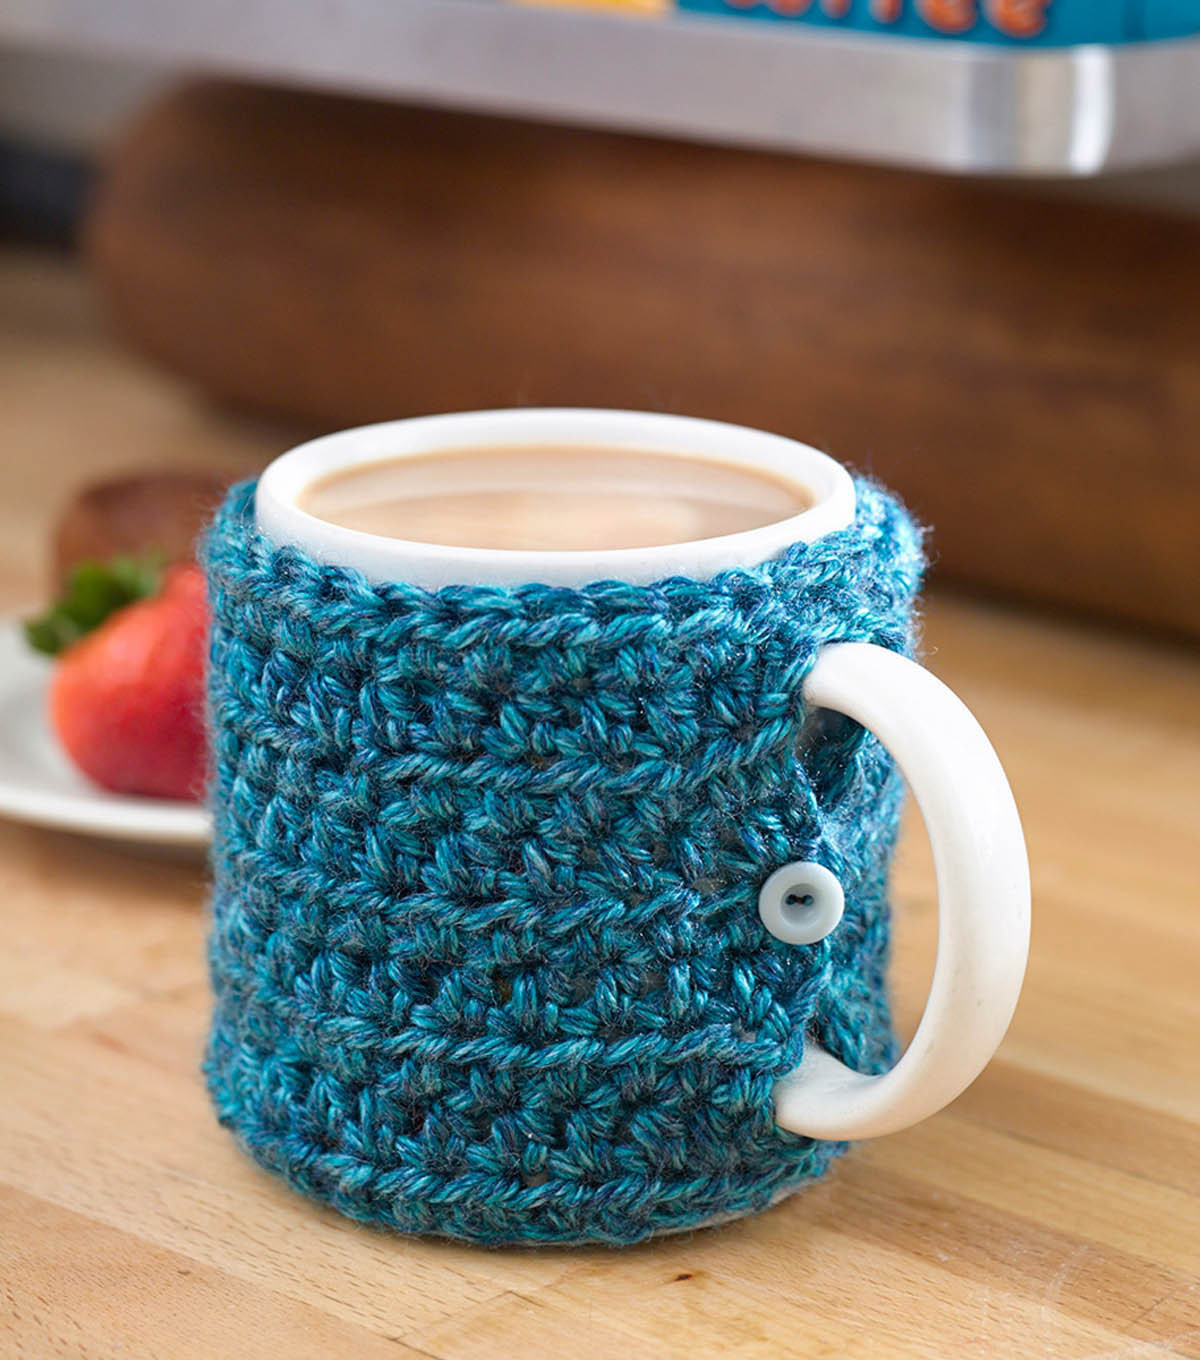 Crochet Coffee Cup Cozy Best Of Craftdrawer Crafts Free Easy to Crochet Mug Cozy Patterns Of Crochet Coffee Cup Cozy Fresh Creativity Awaits Crochet Coffee Cozy Patterns Stitch